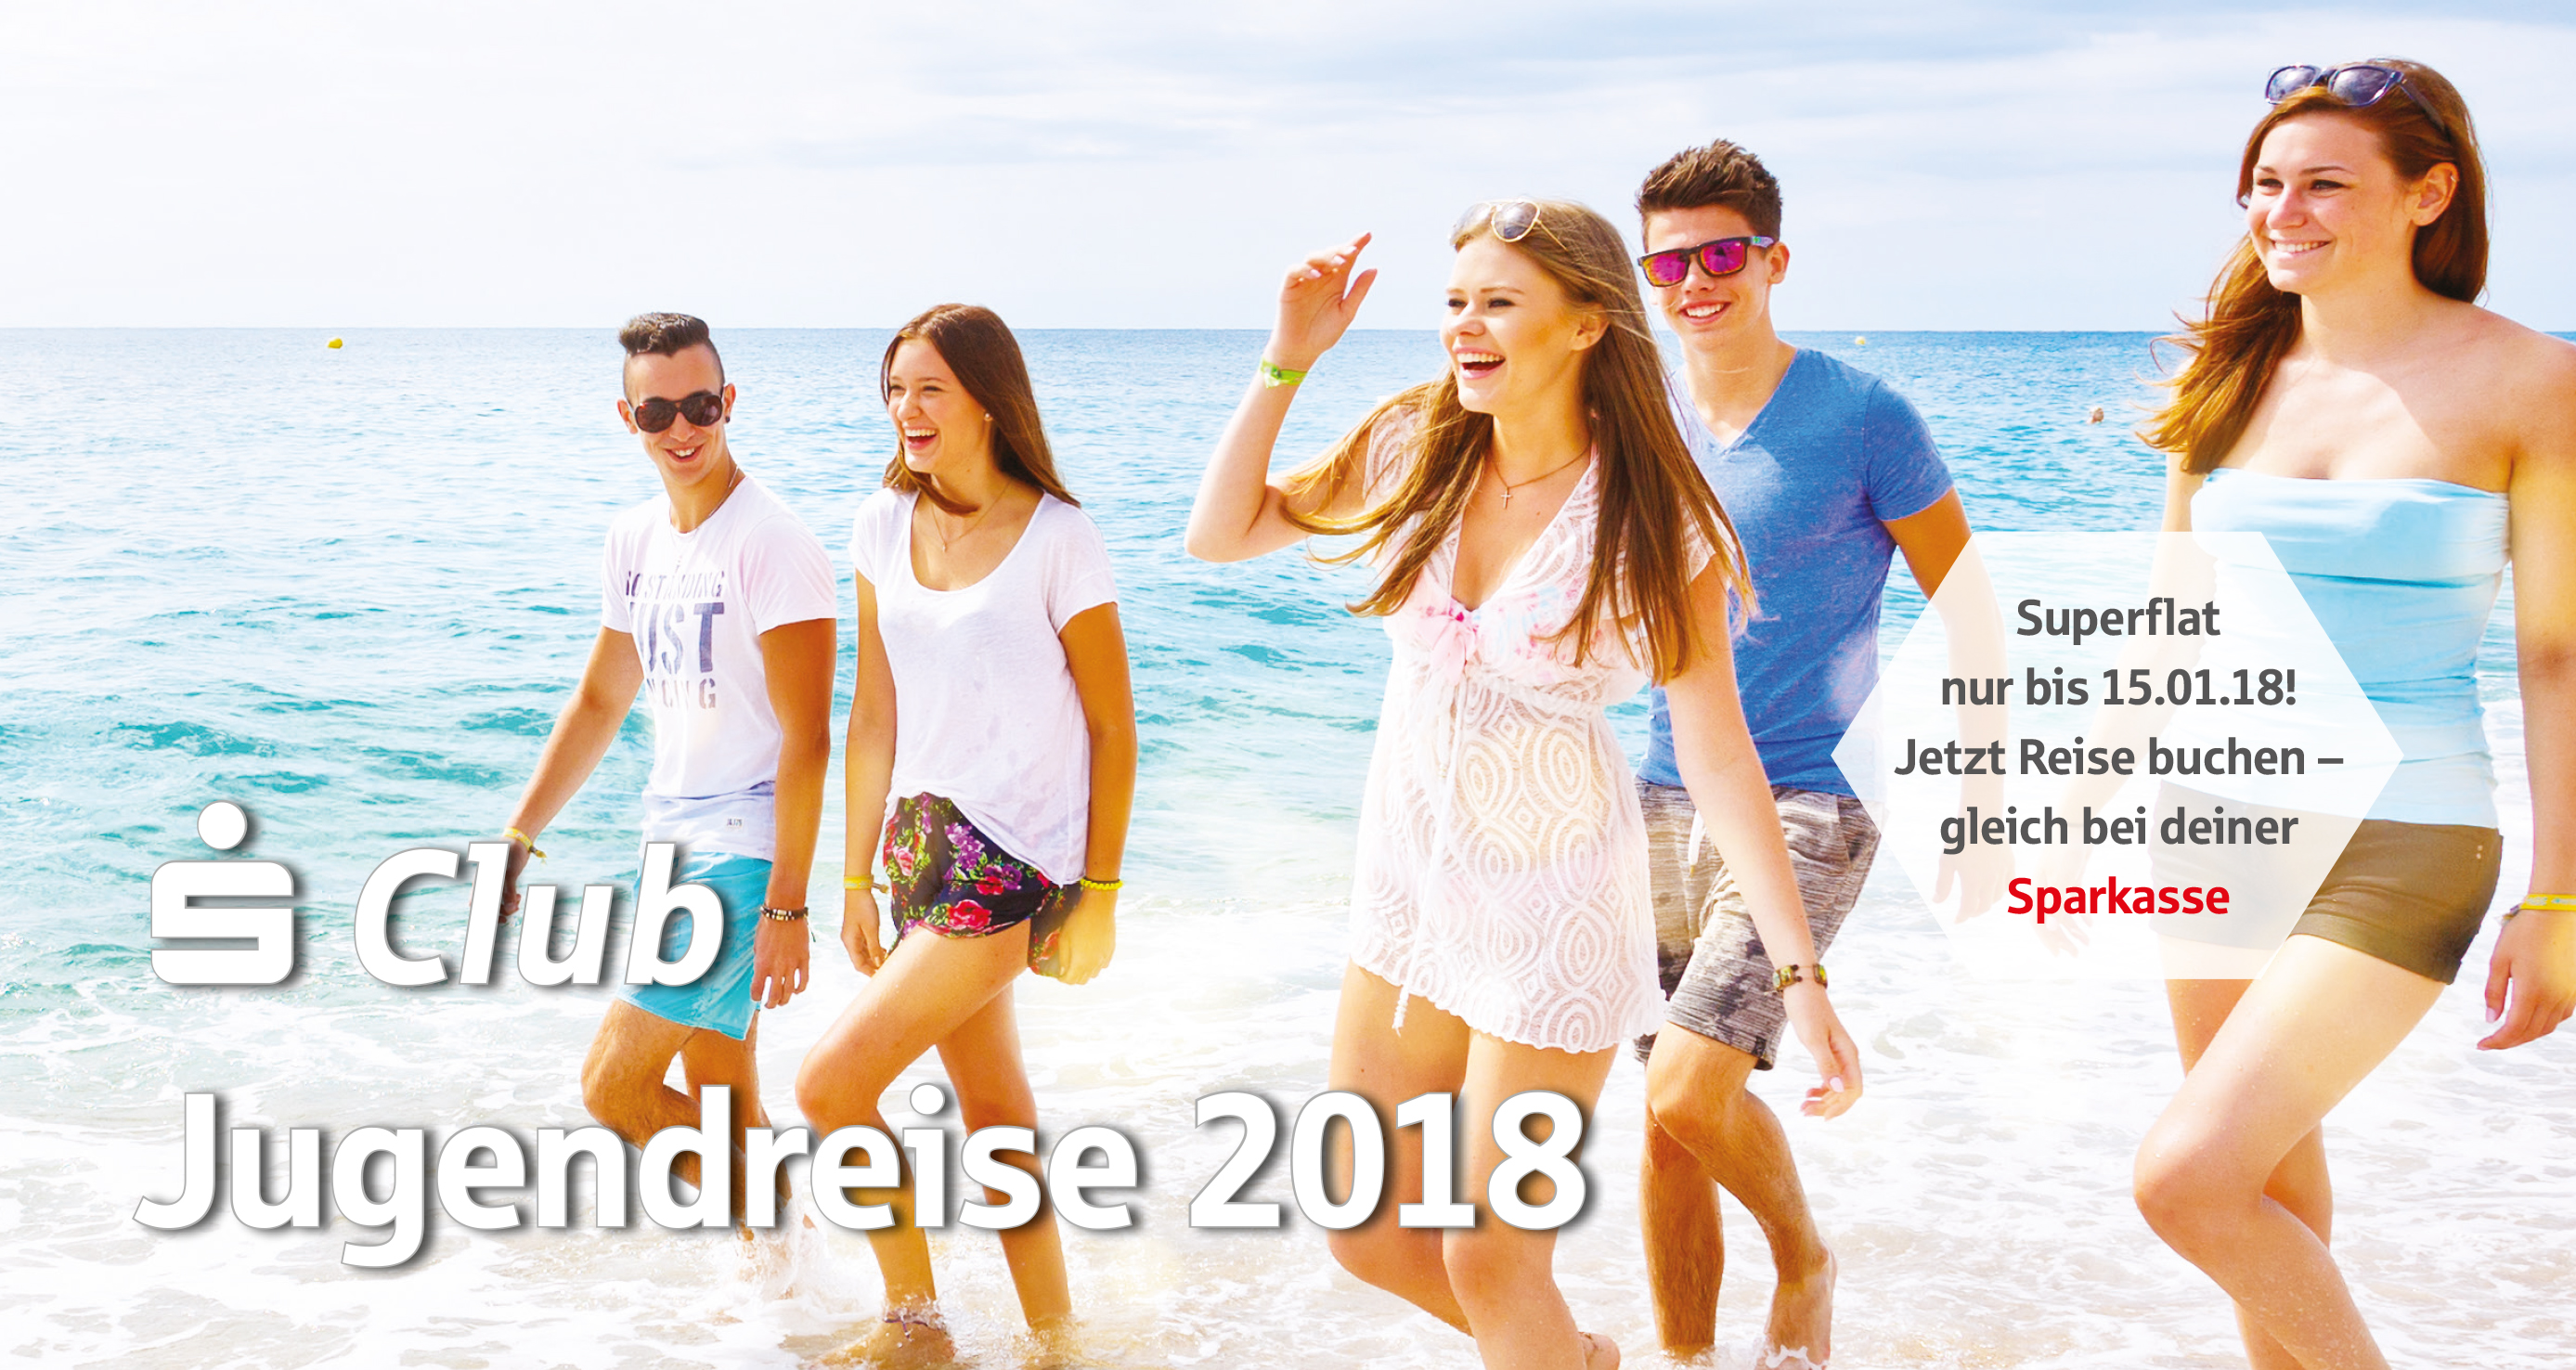 S Club Jugendreise 2018 – ruf beachcamp in Spanien / Malgrat